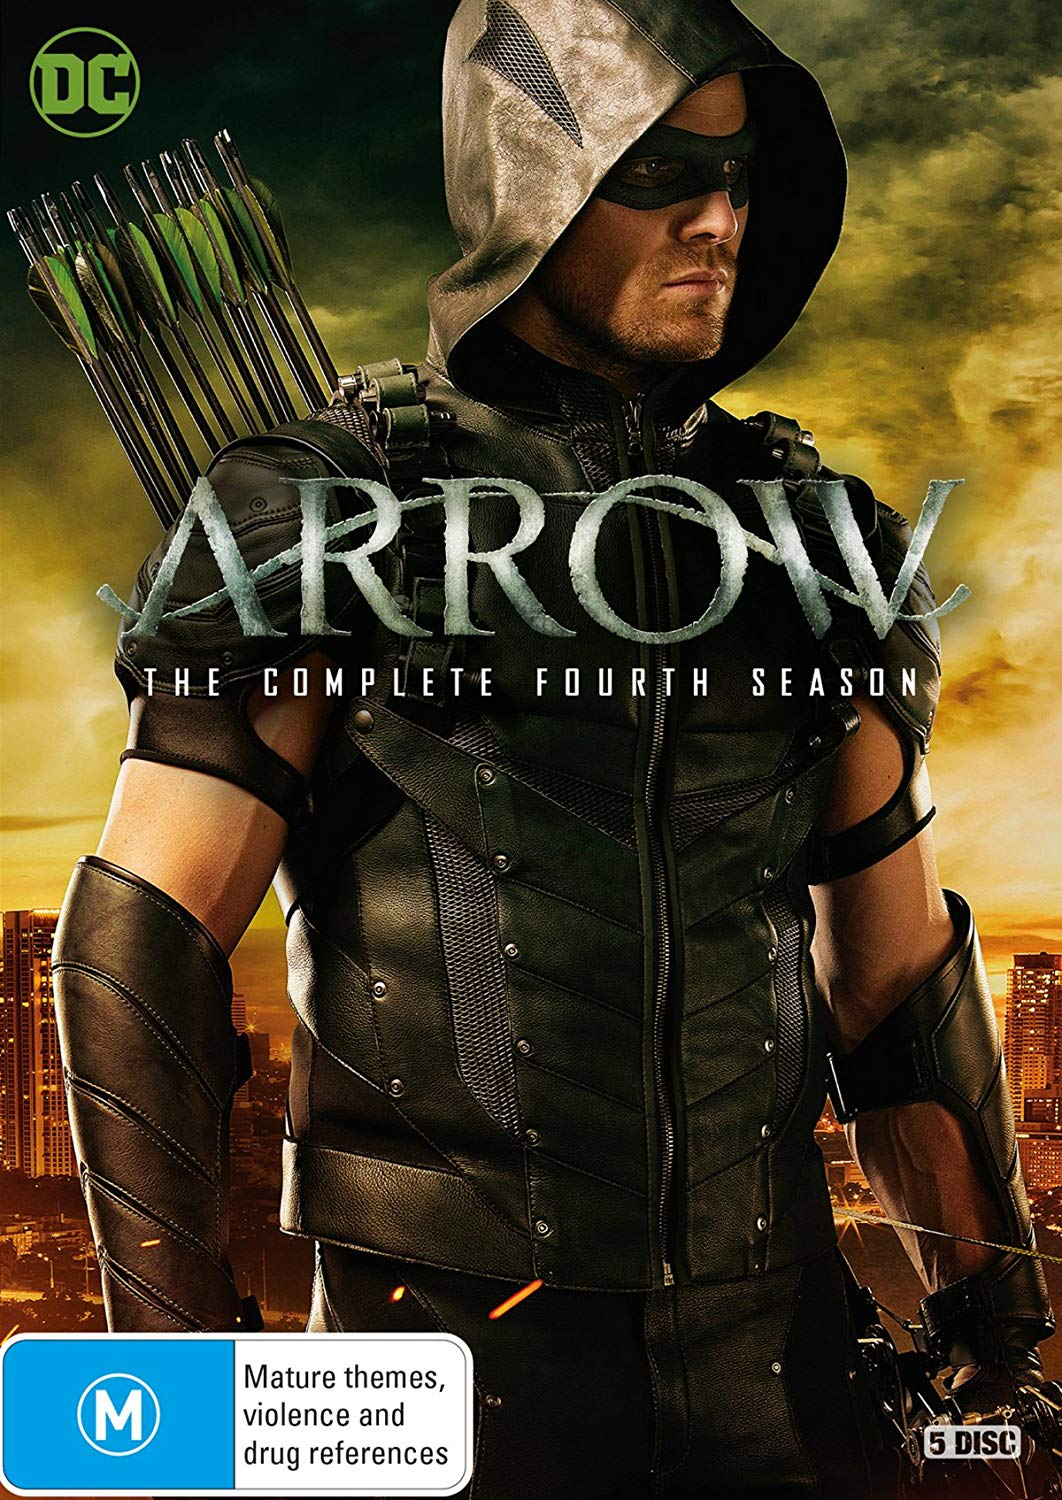 Arrow - The Complete Fourth Season region 4 cover.png